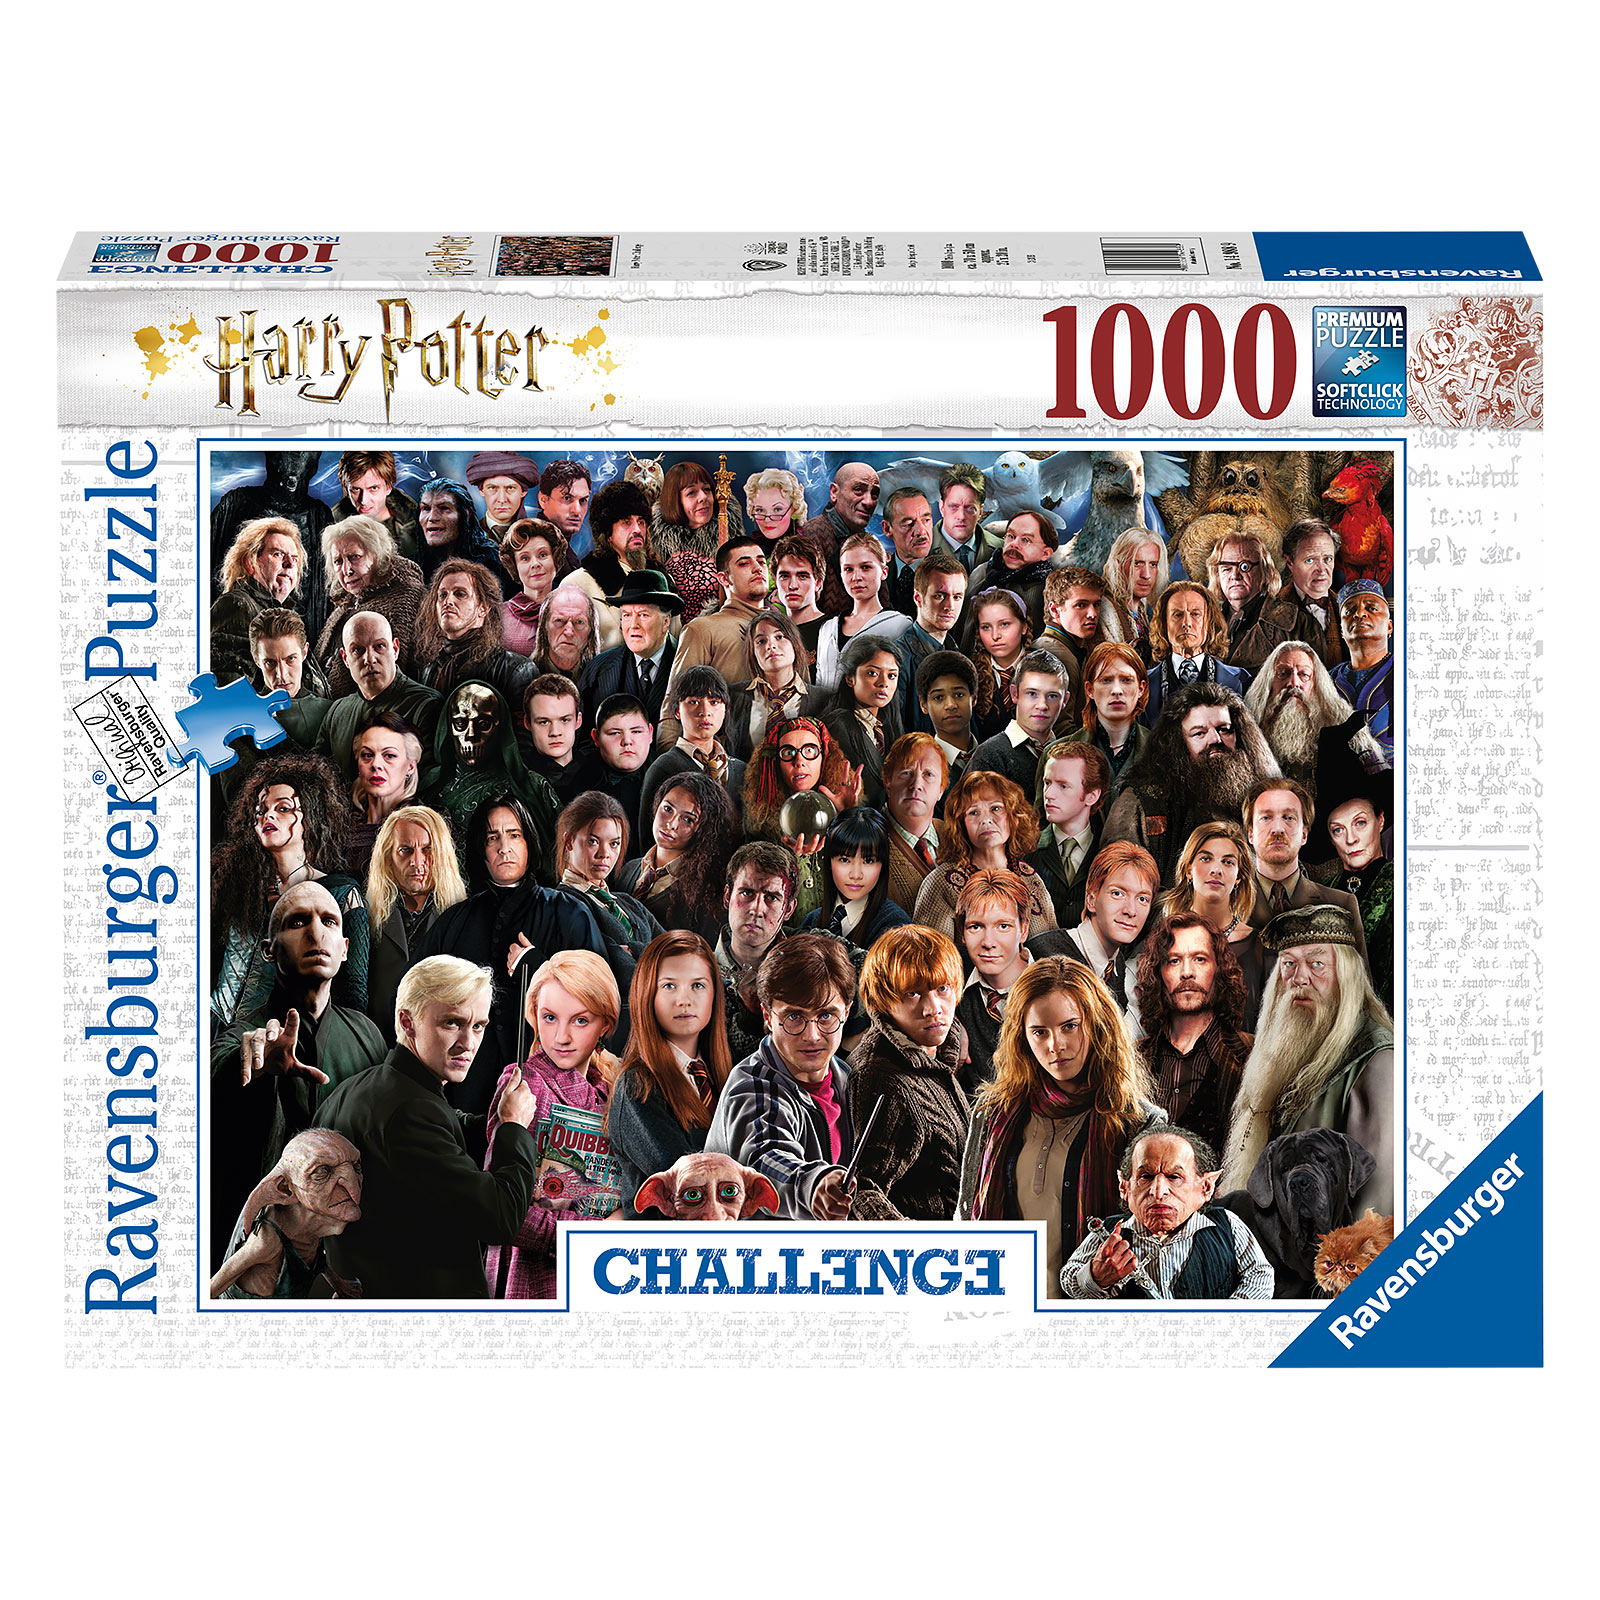 Harry Potter - Characters Challenge Puzzle